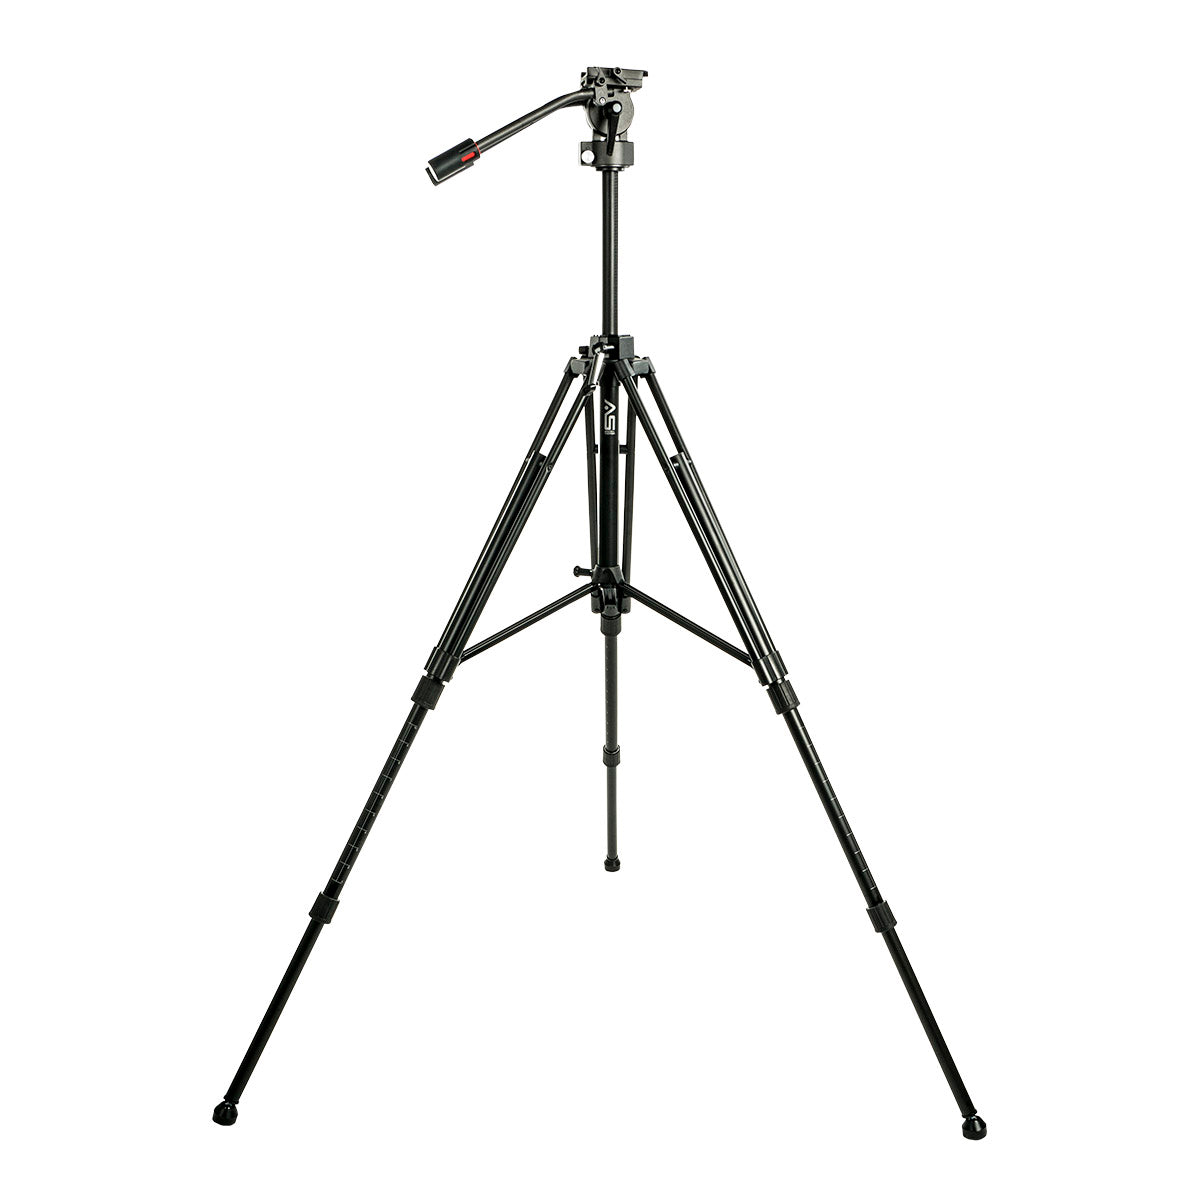 Smith Victor Propod PRO-5 Large Tripod with 2-Way Fluid Head